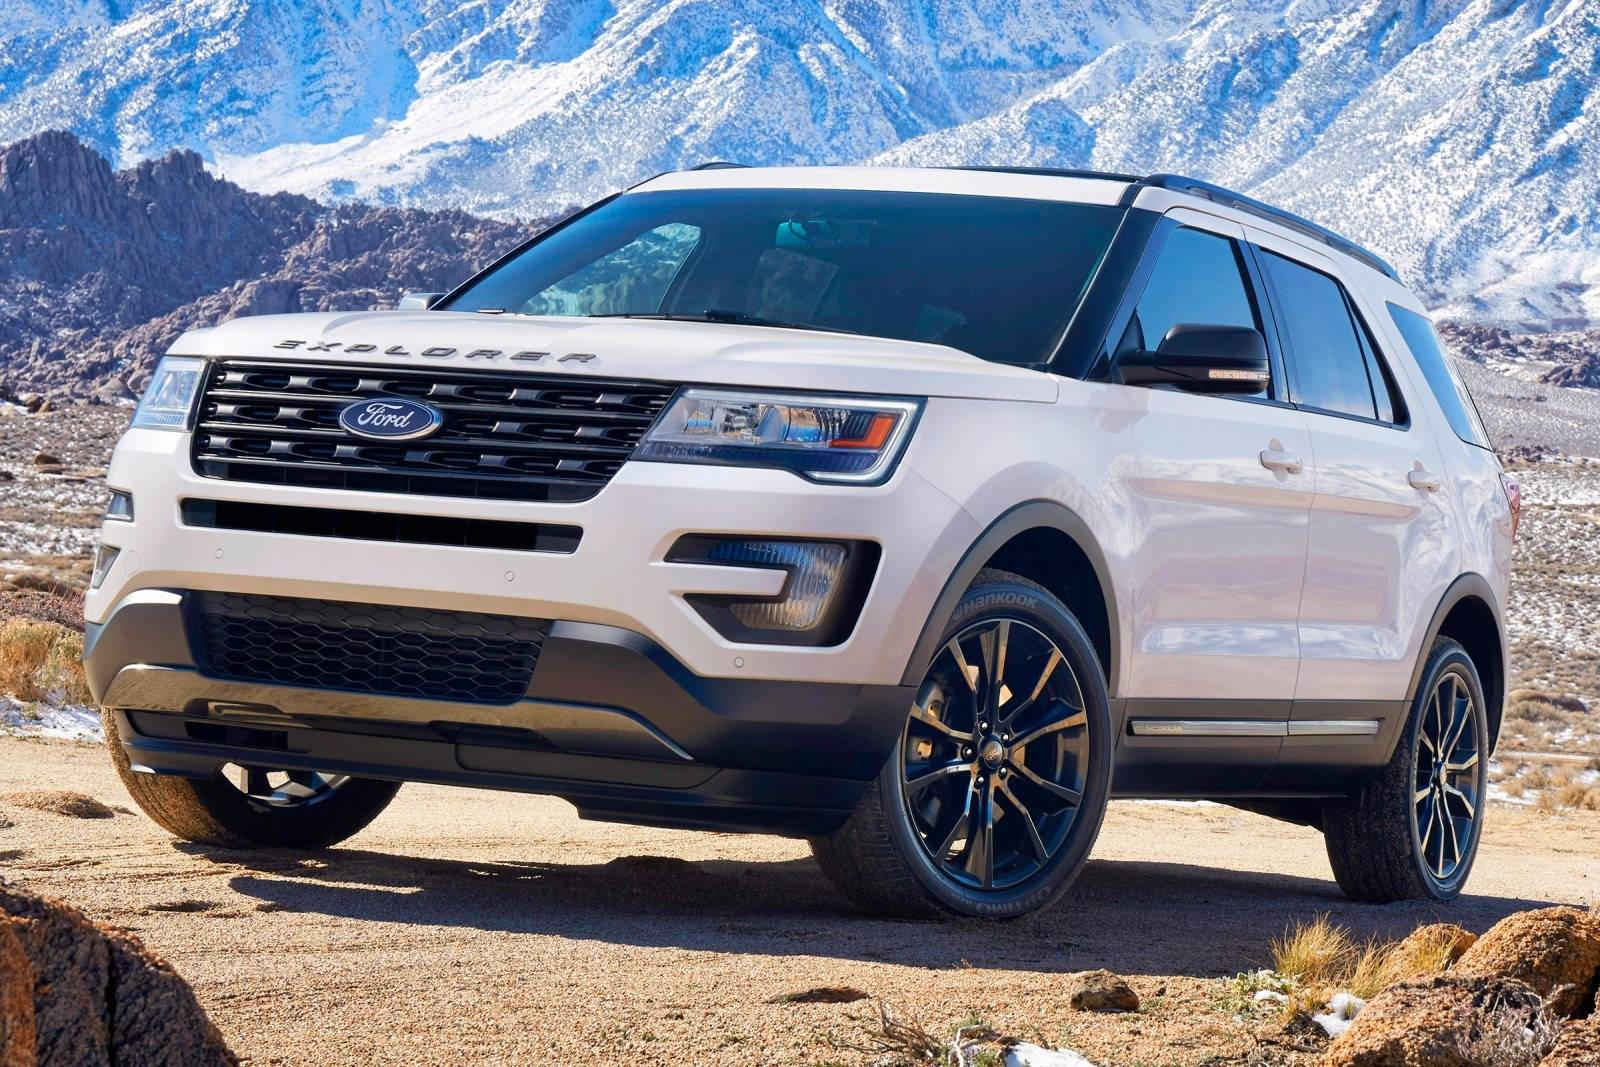 2018 ford explorer suv review trims specs and price. Black Bedroom Furniture Sets. Home Design Ideas